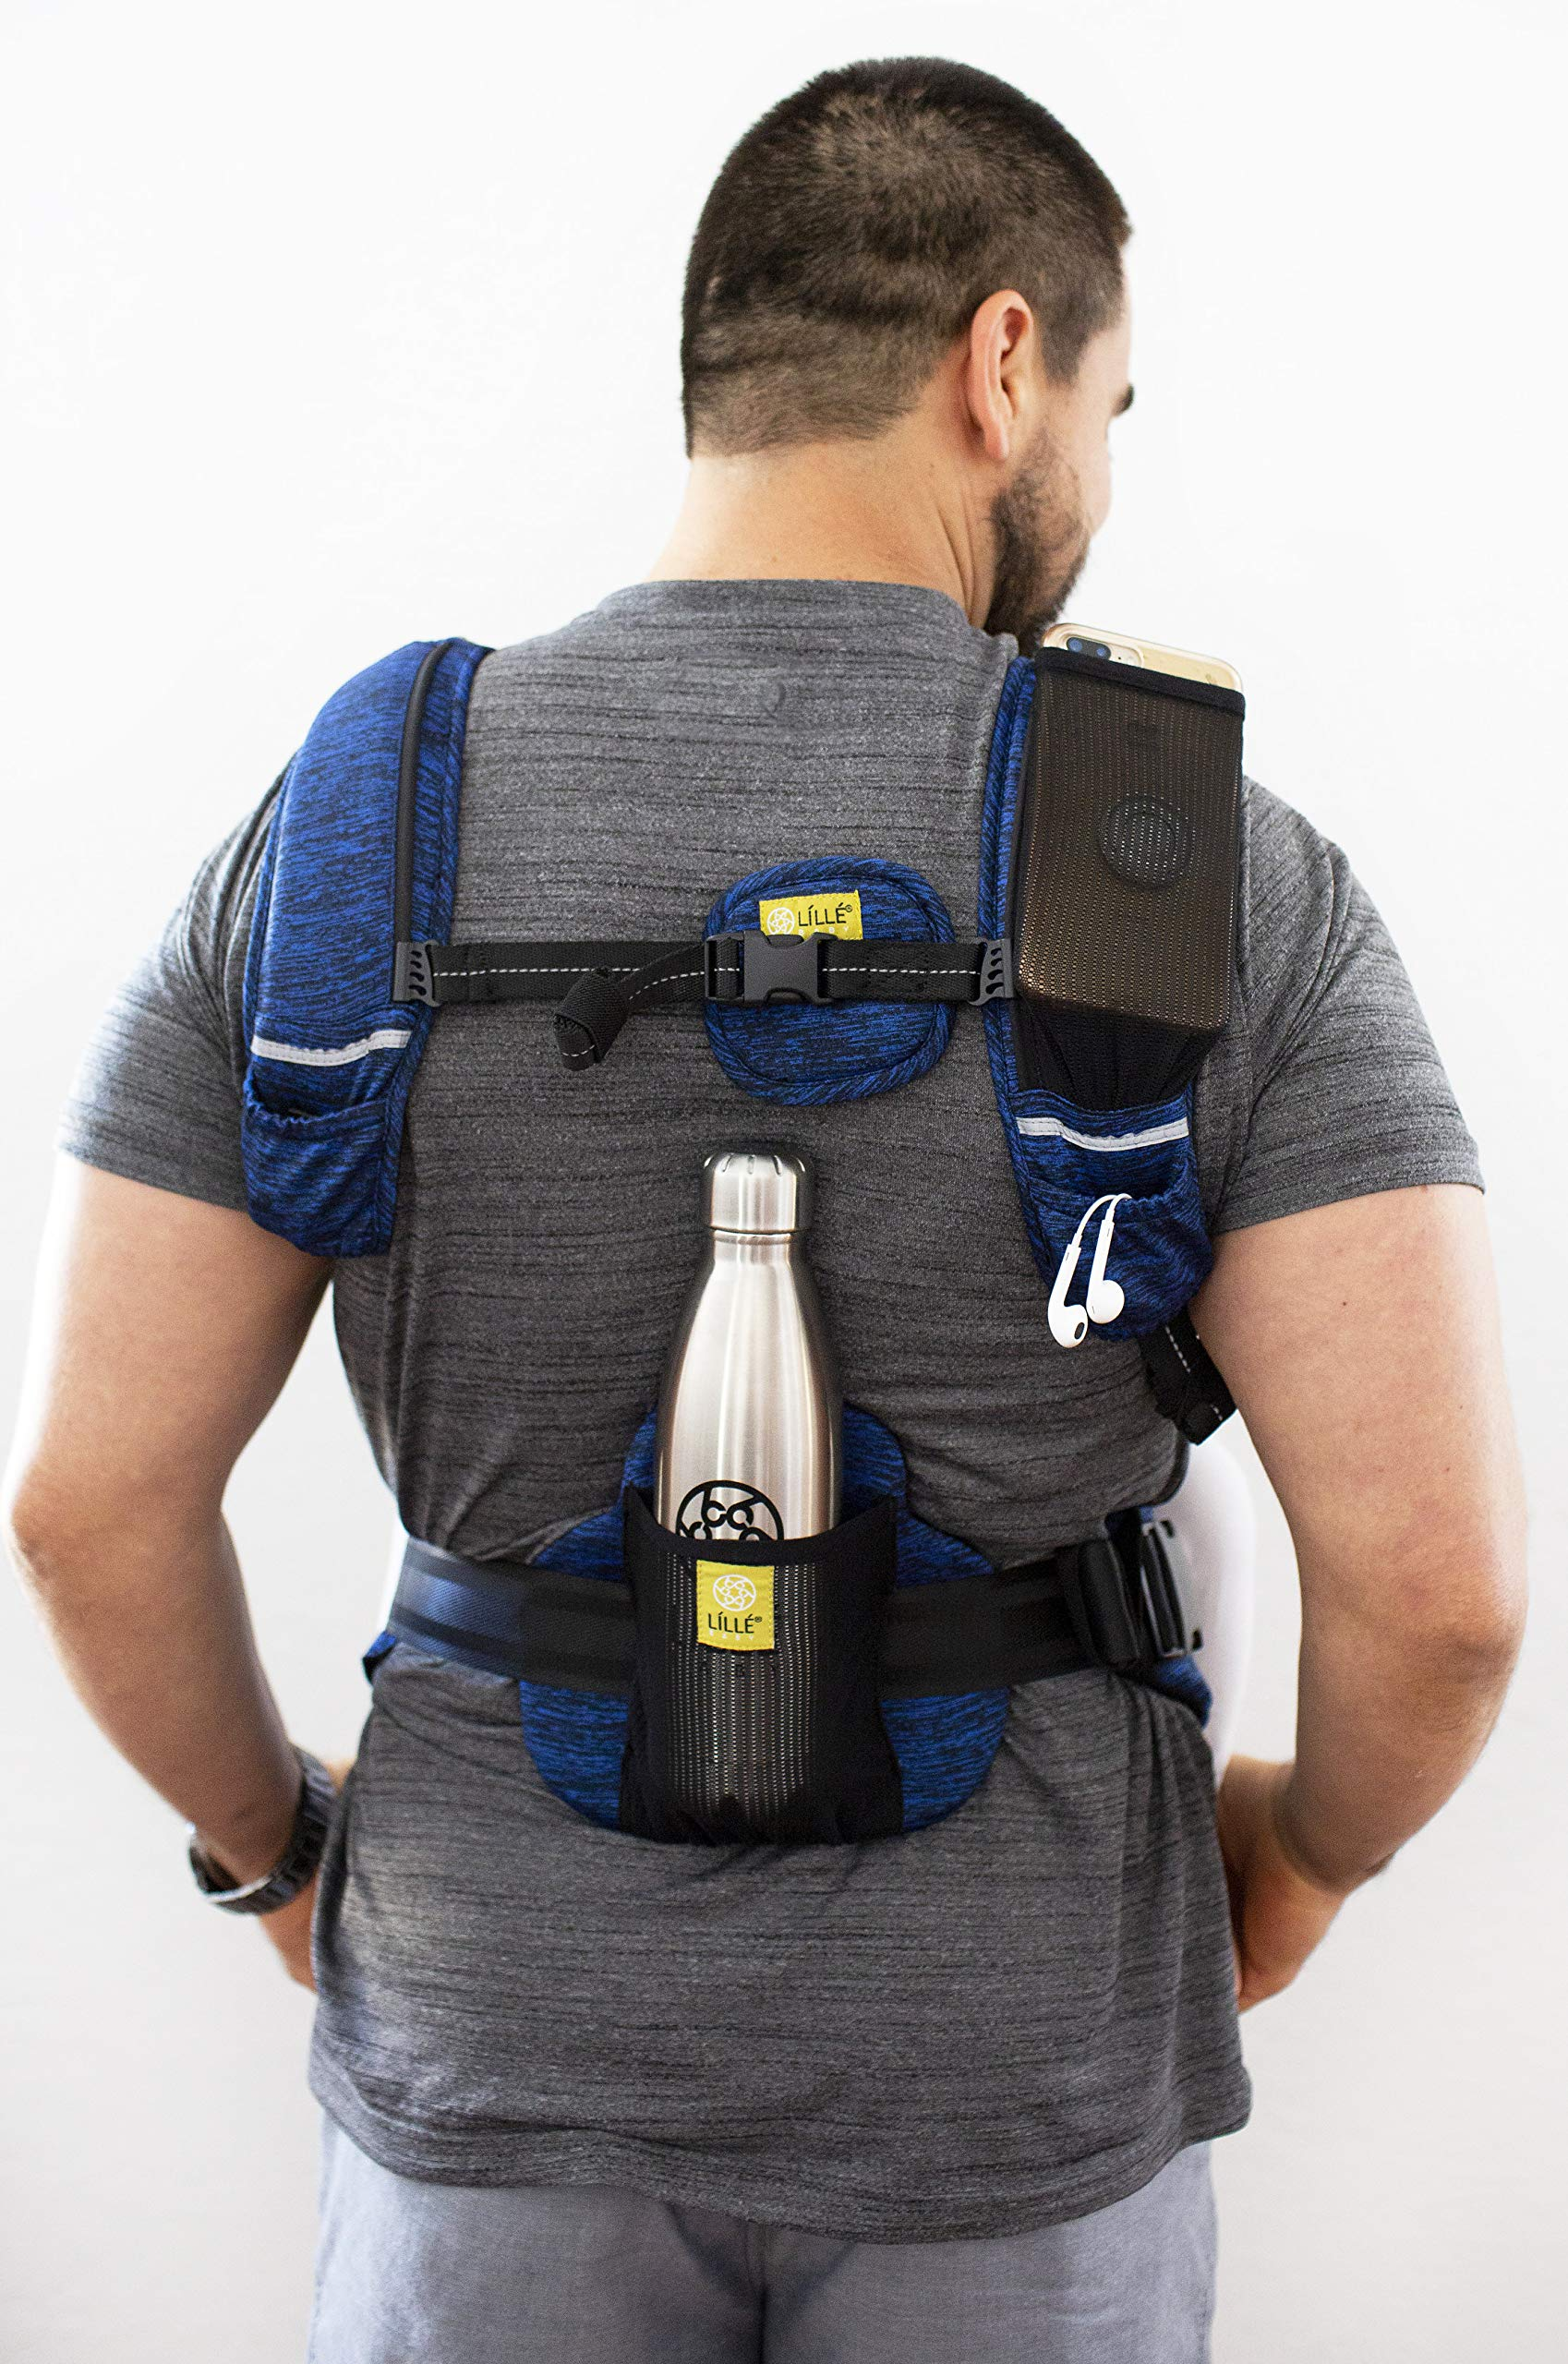 LÍLLÉbaby Complete Pursuit Pro 6-in-1 Baby Carrier Heathered, Sapphire Lillebaby Designed specifically for parents on the go, our pusuit series combines the comfort and functionality of our 6 in 1 design with adventure-ready features to help you show your little one the world Suitable from birth to 4 years, the active pro has a perfect combination of responsive fabric, advanced ergonomic fit, and innovative safety upgrades make it the ideal tool for all-weather exploring Unique líllébaby lumbar support for the wearer, with wide padded waist belt and shoulder straps 2